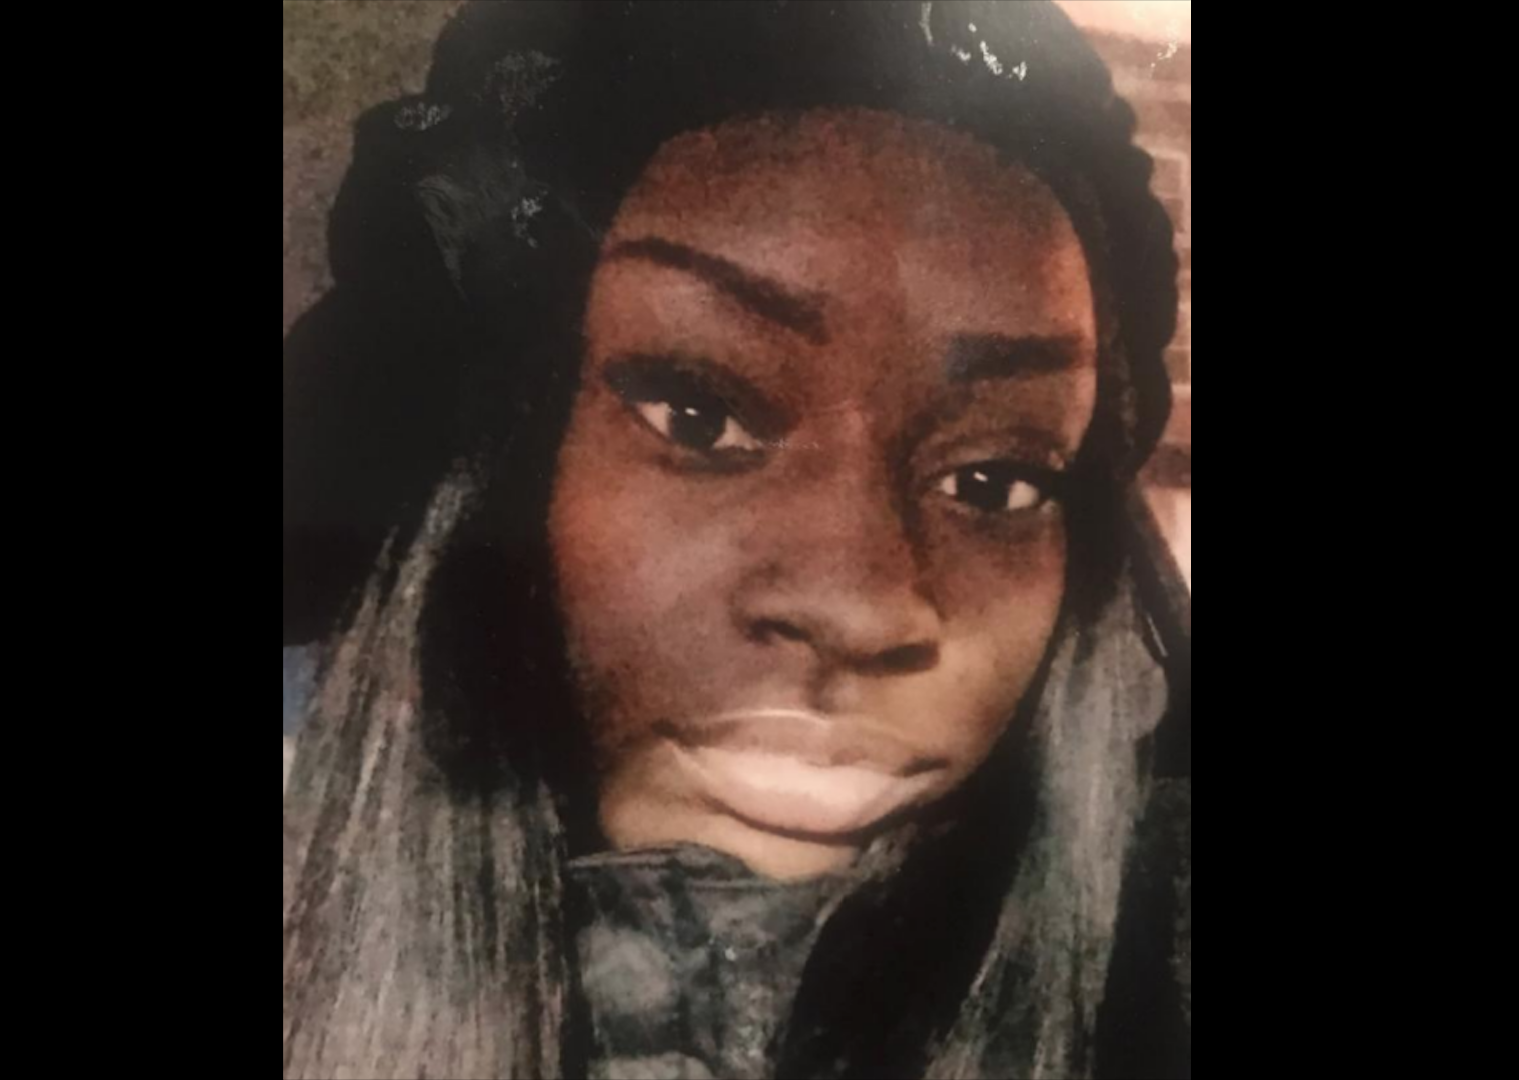 Alyshia Davis was reported missing